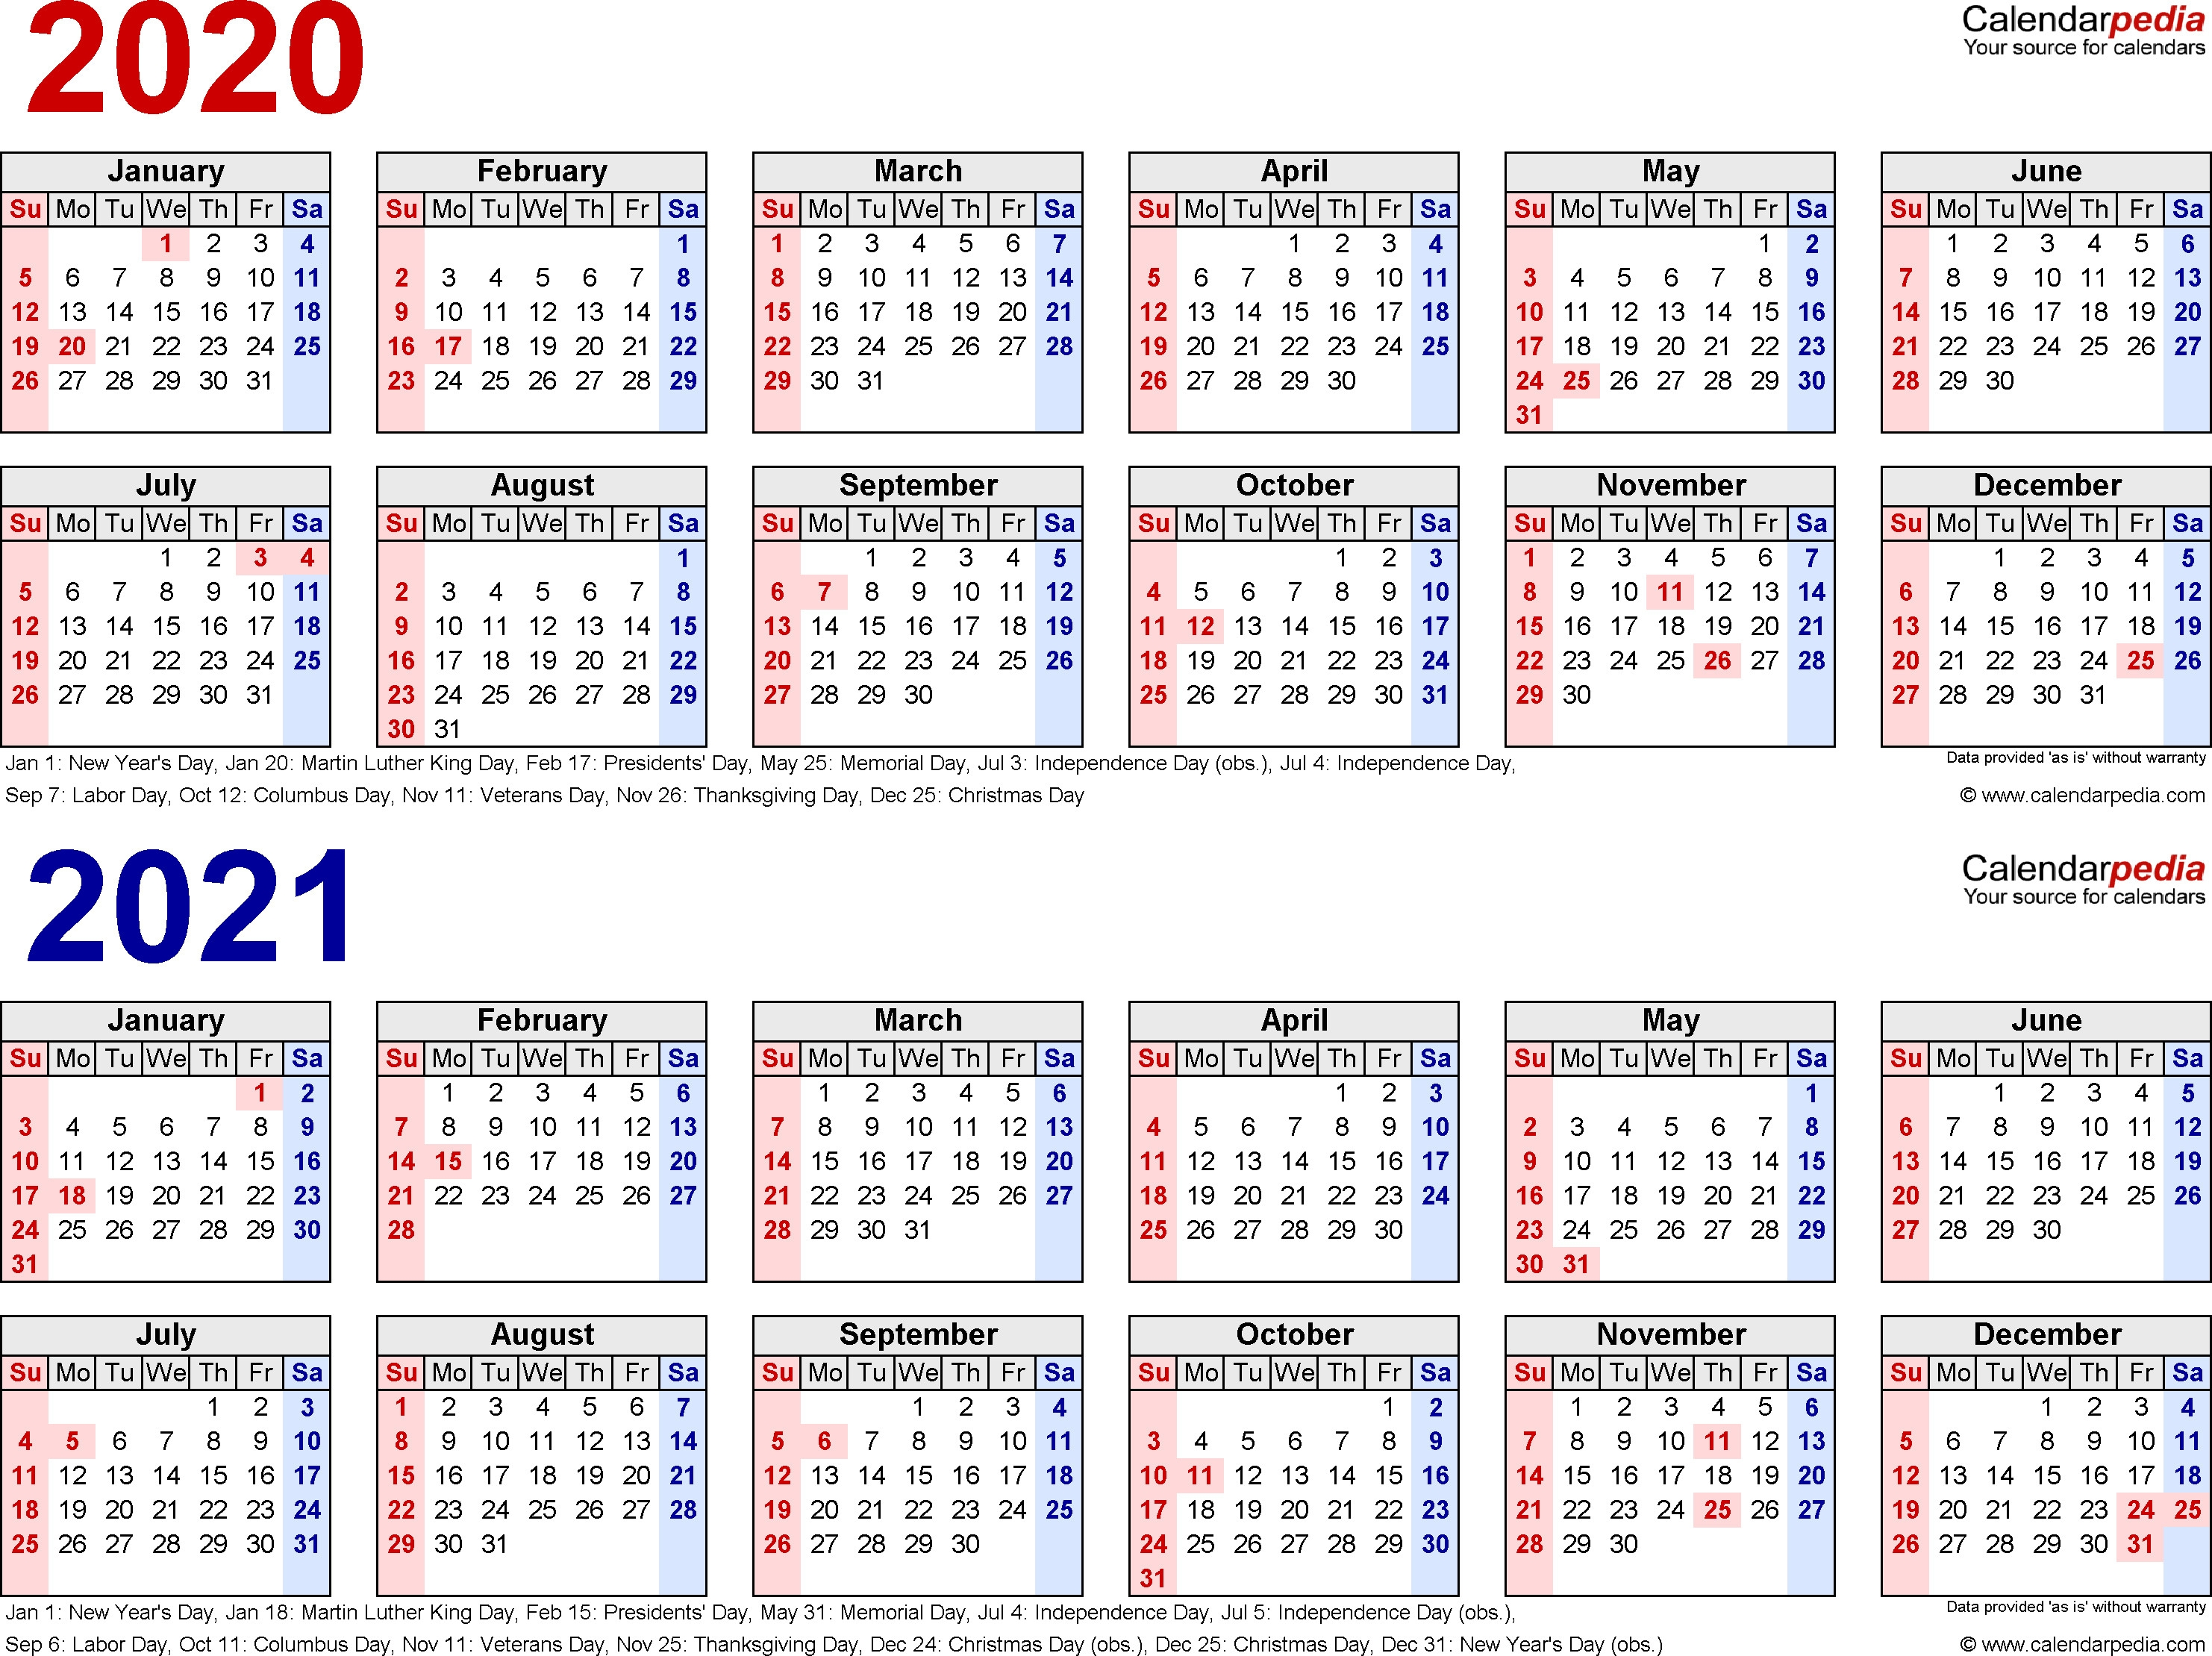 2020 2021 Calendar Free Printable Two Year Word Calendars Within